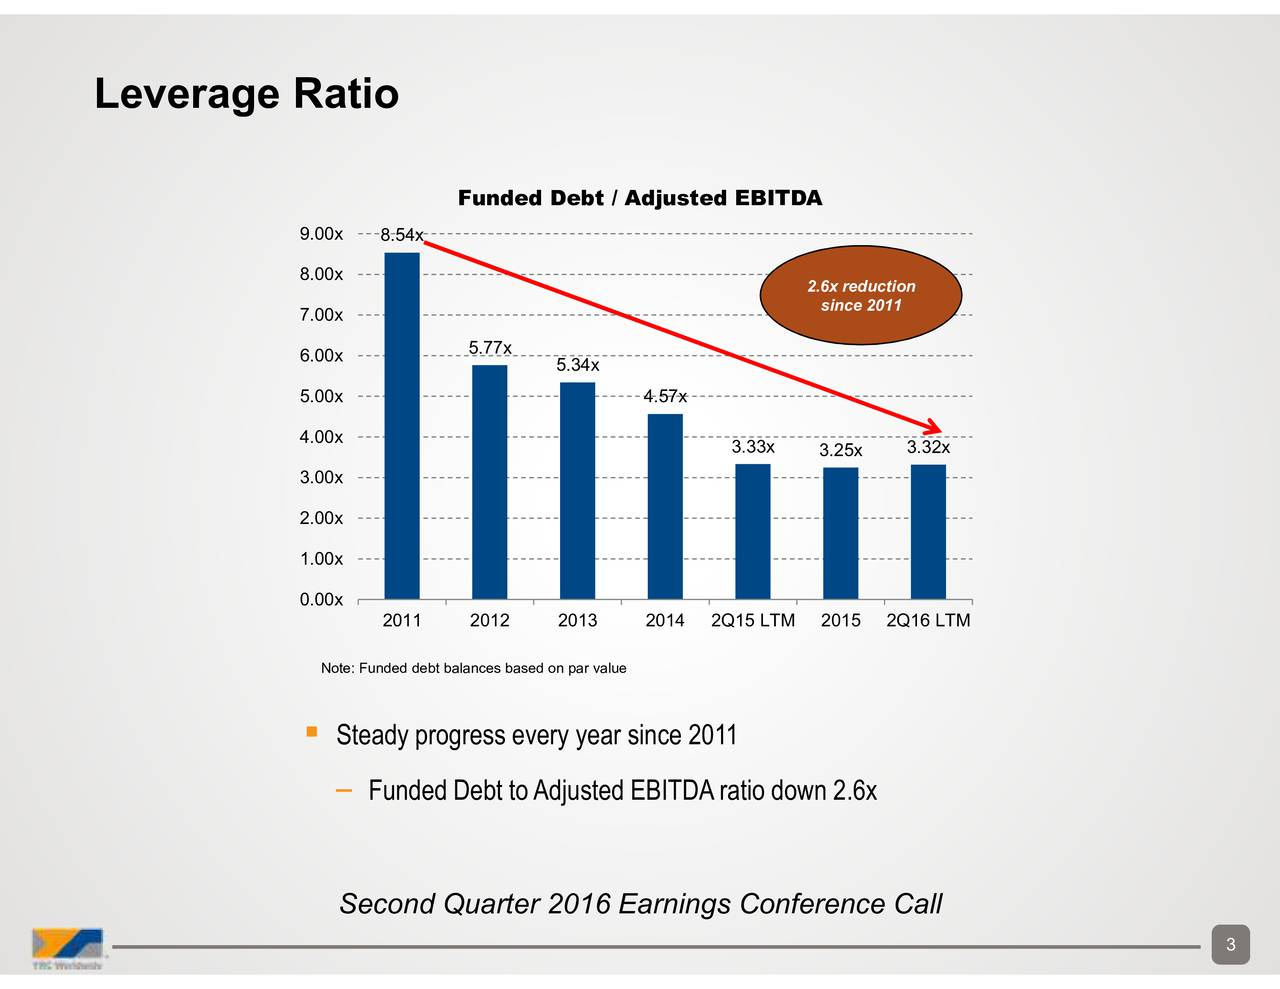 .32x since 2011 3.25x 2.6x reduction .33x 4.57x 5.34x Funded Debt / Adjusted EBITDA 8.54x 2011 2012 Funded Debt toAdjusted EBITDAratio down 2.6x Steadyprogress every year since 2011Earnings Conference Call Note: Funded debt balances based on par value 9.00x8.00x7.00x6.00x5.00x4.00x3.00x2.00x1.00x0.00x Leverage Ratio